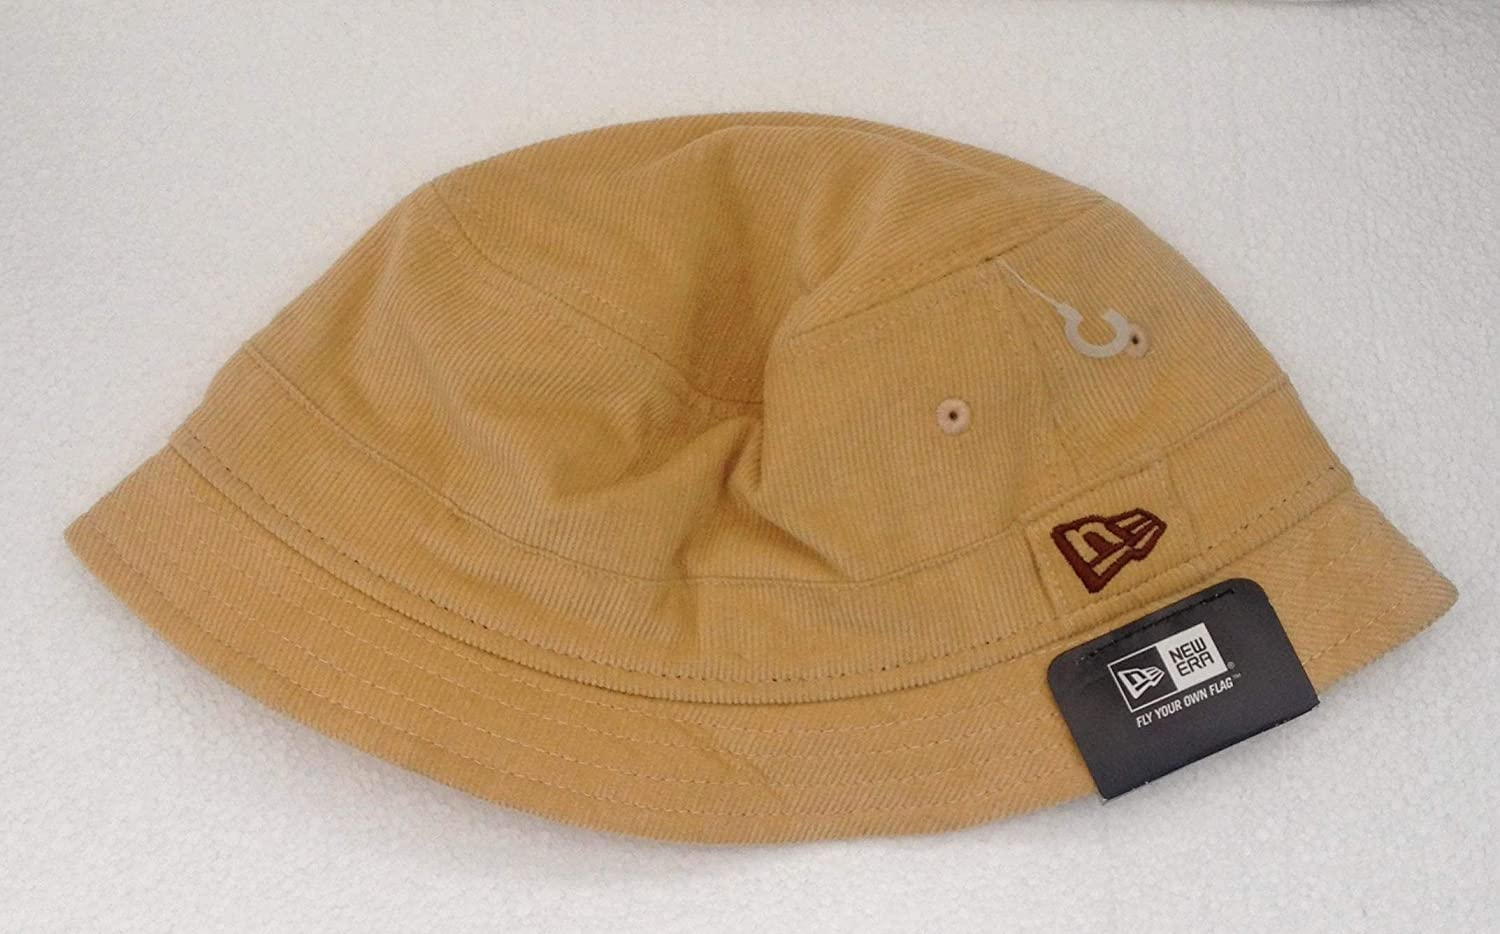 cae1a56c12 New Era Adults Unisex Corduroy Bucket Hat  Amazon.co.uk  Sports   Outdoors